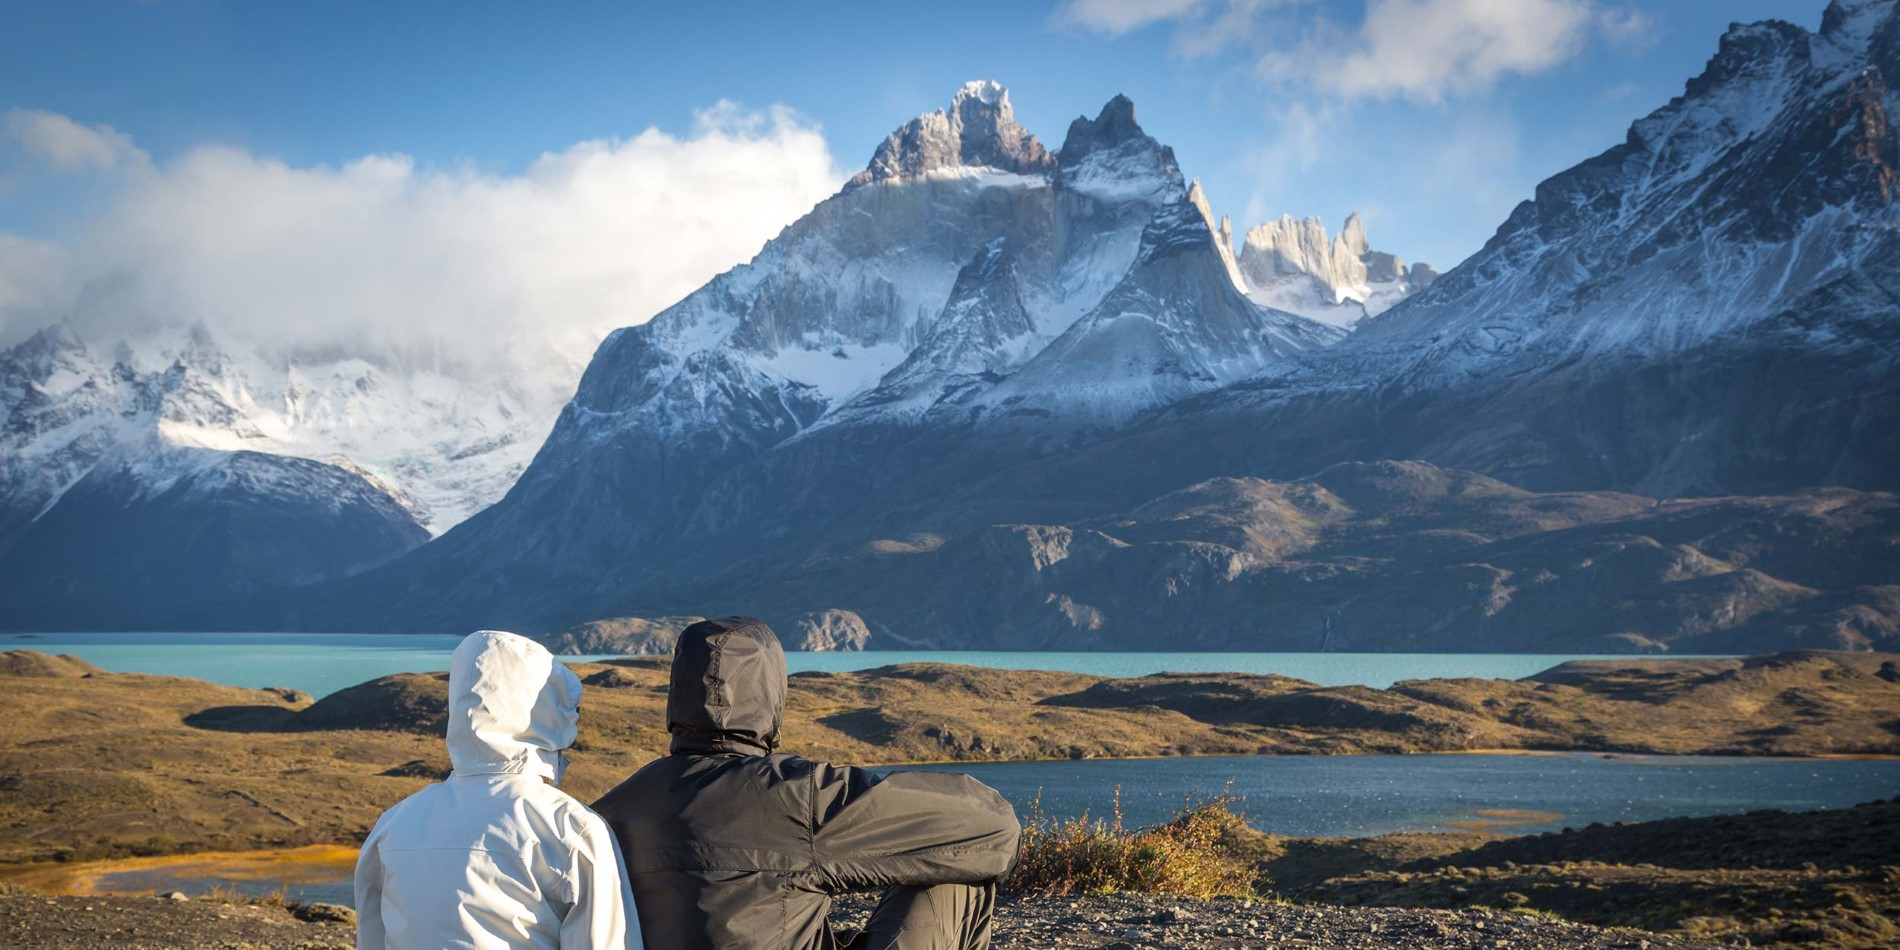 Enjoy the view of mountains covered by ice in Torres del Paine